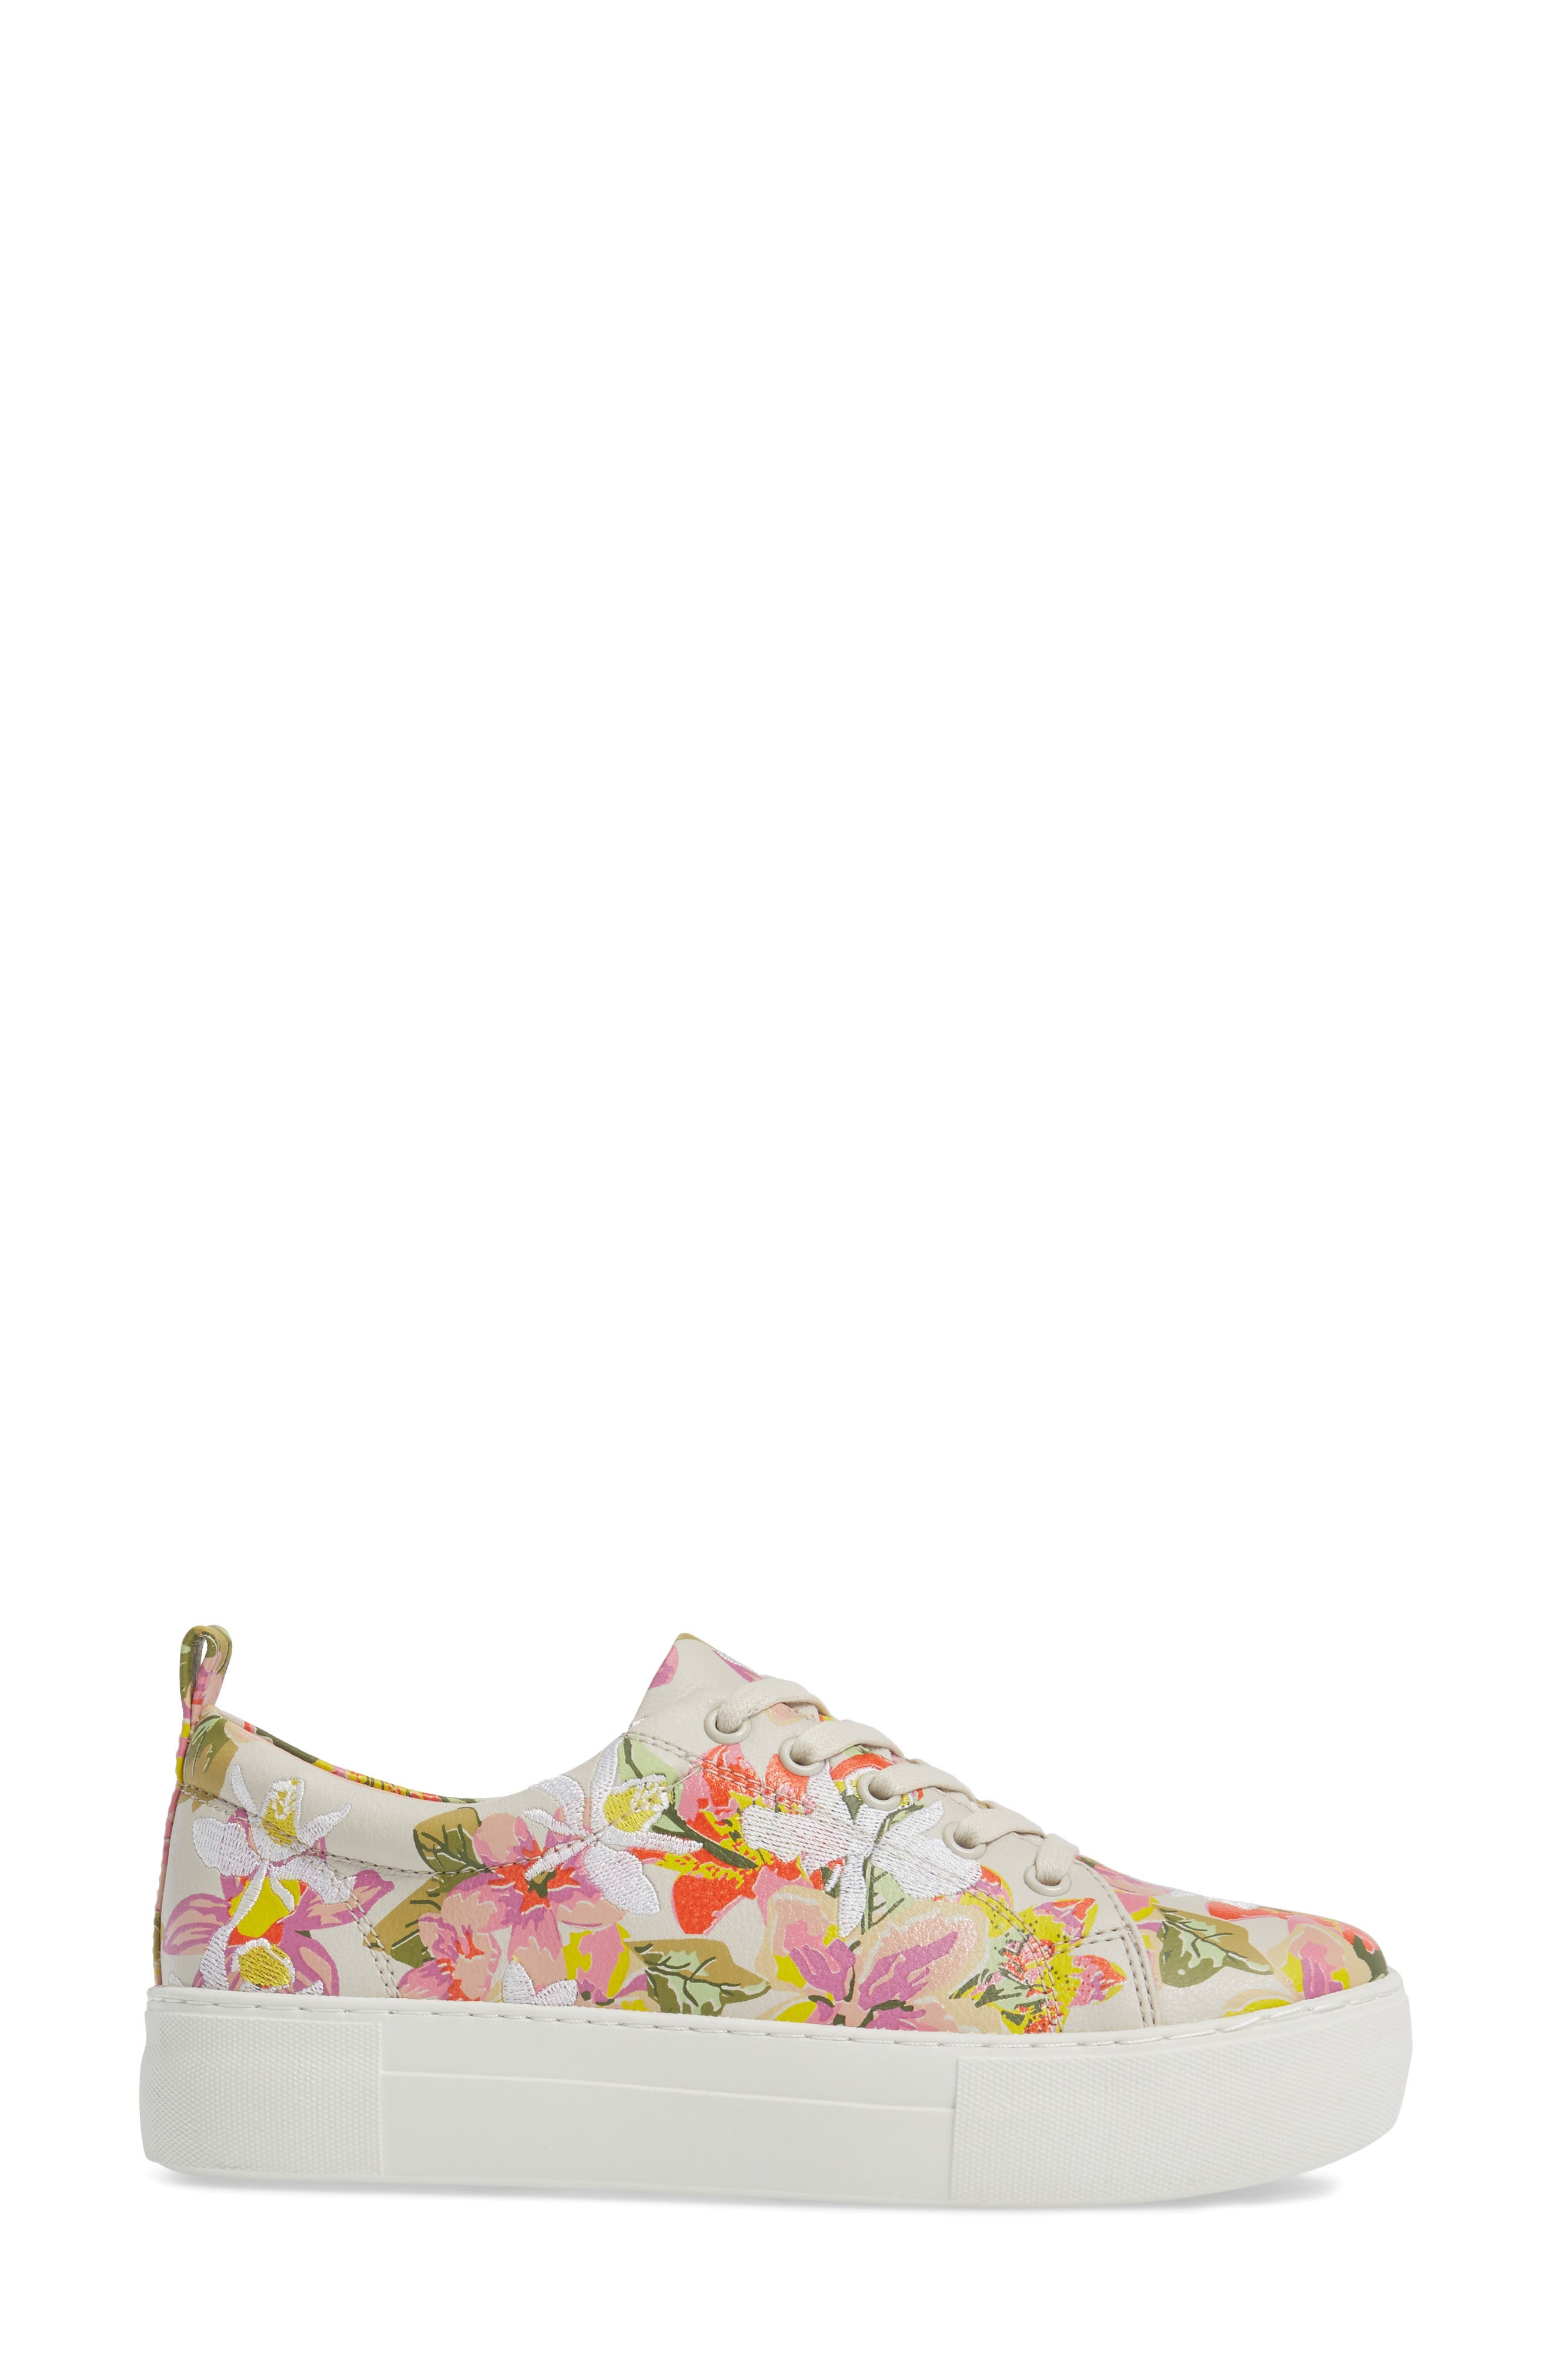 Appy Embroidered Platform Sneaker,                             Alternate thumbnail 3, color,